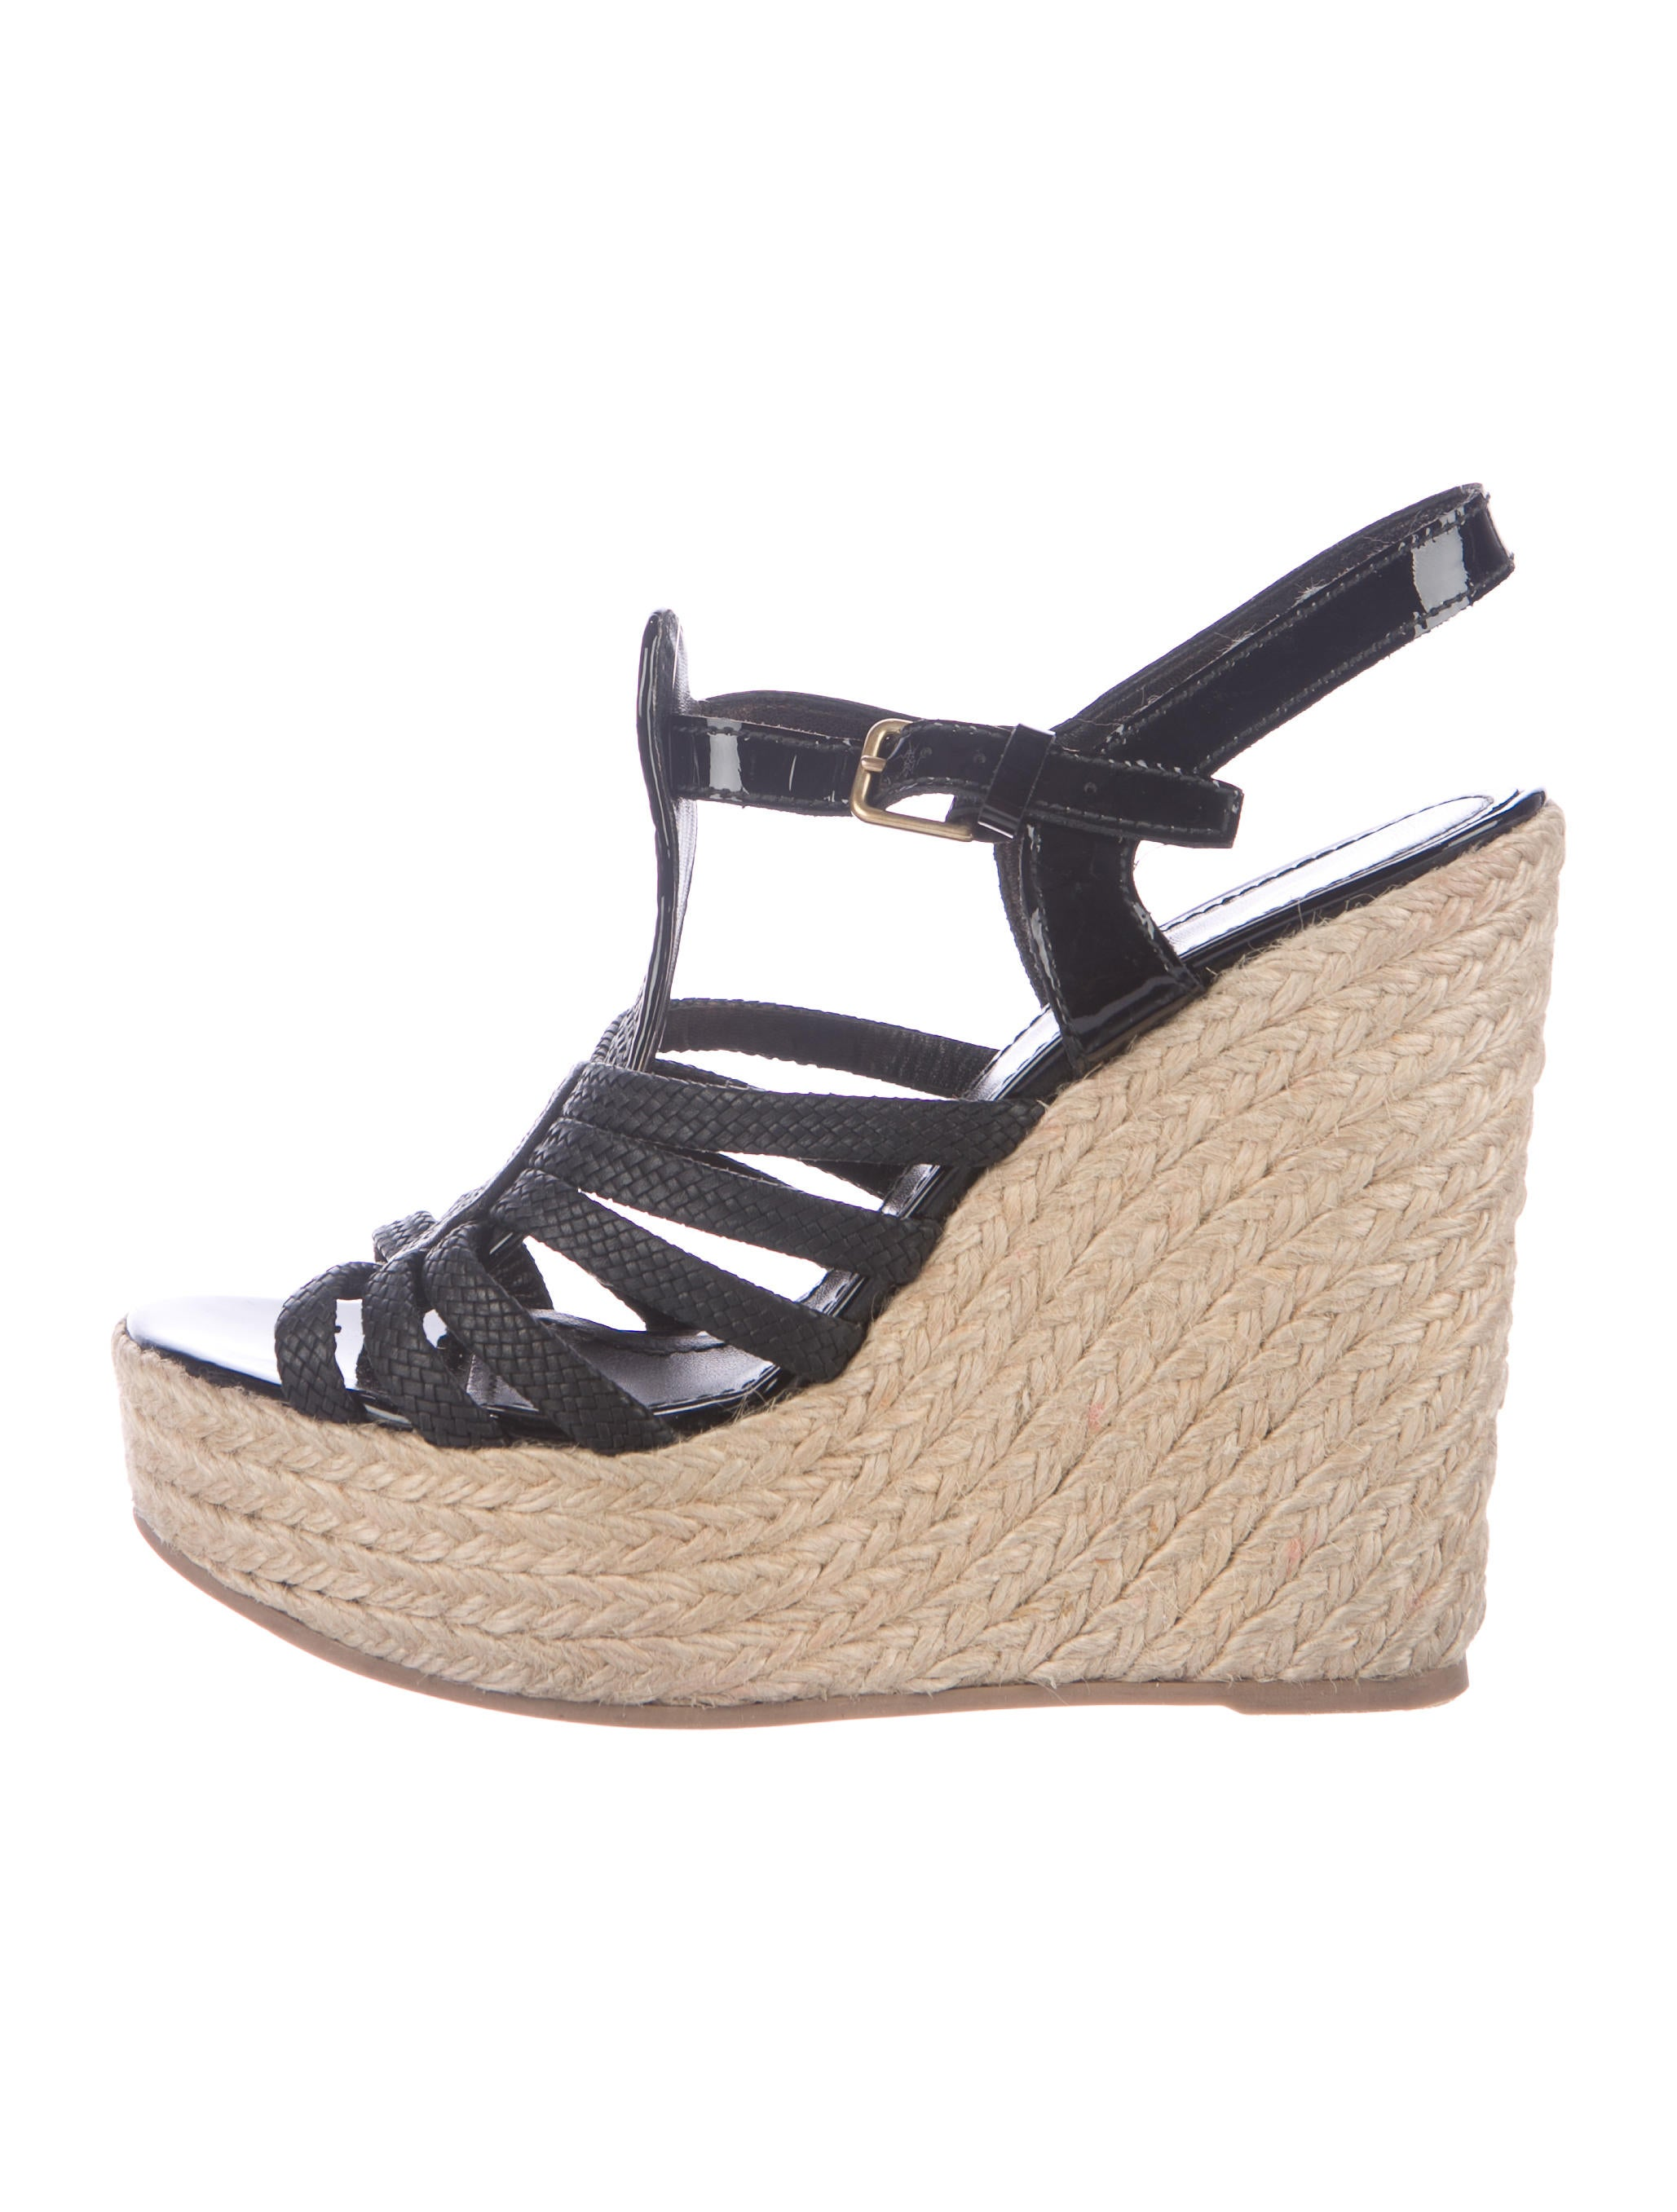 Yves Saint Laurent Platform Espadrille Wedges - Shoes - YVE66119 ... 313a716d39